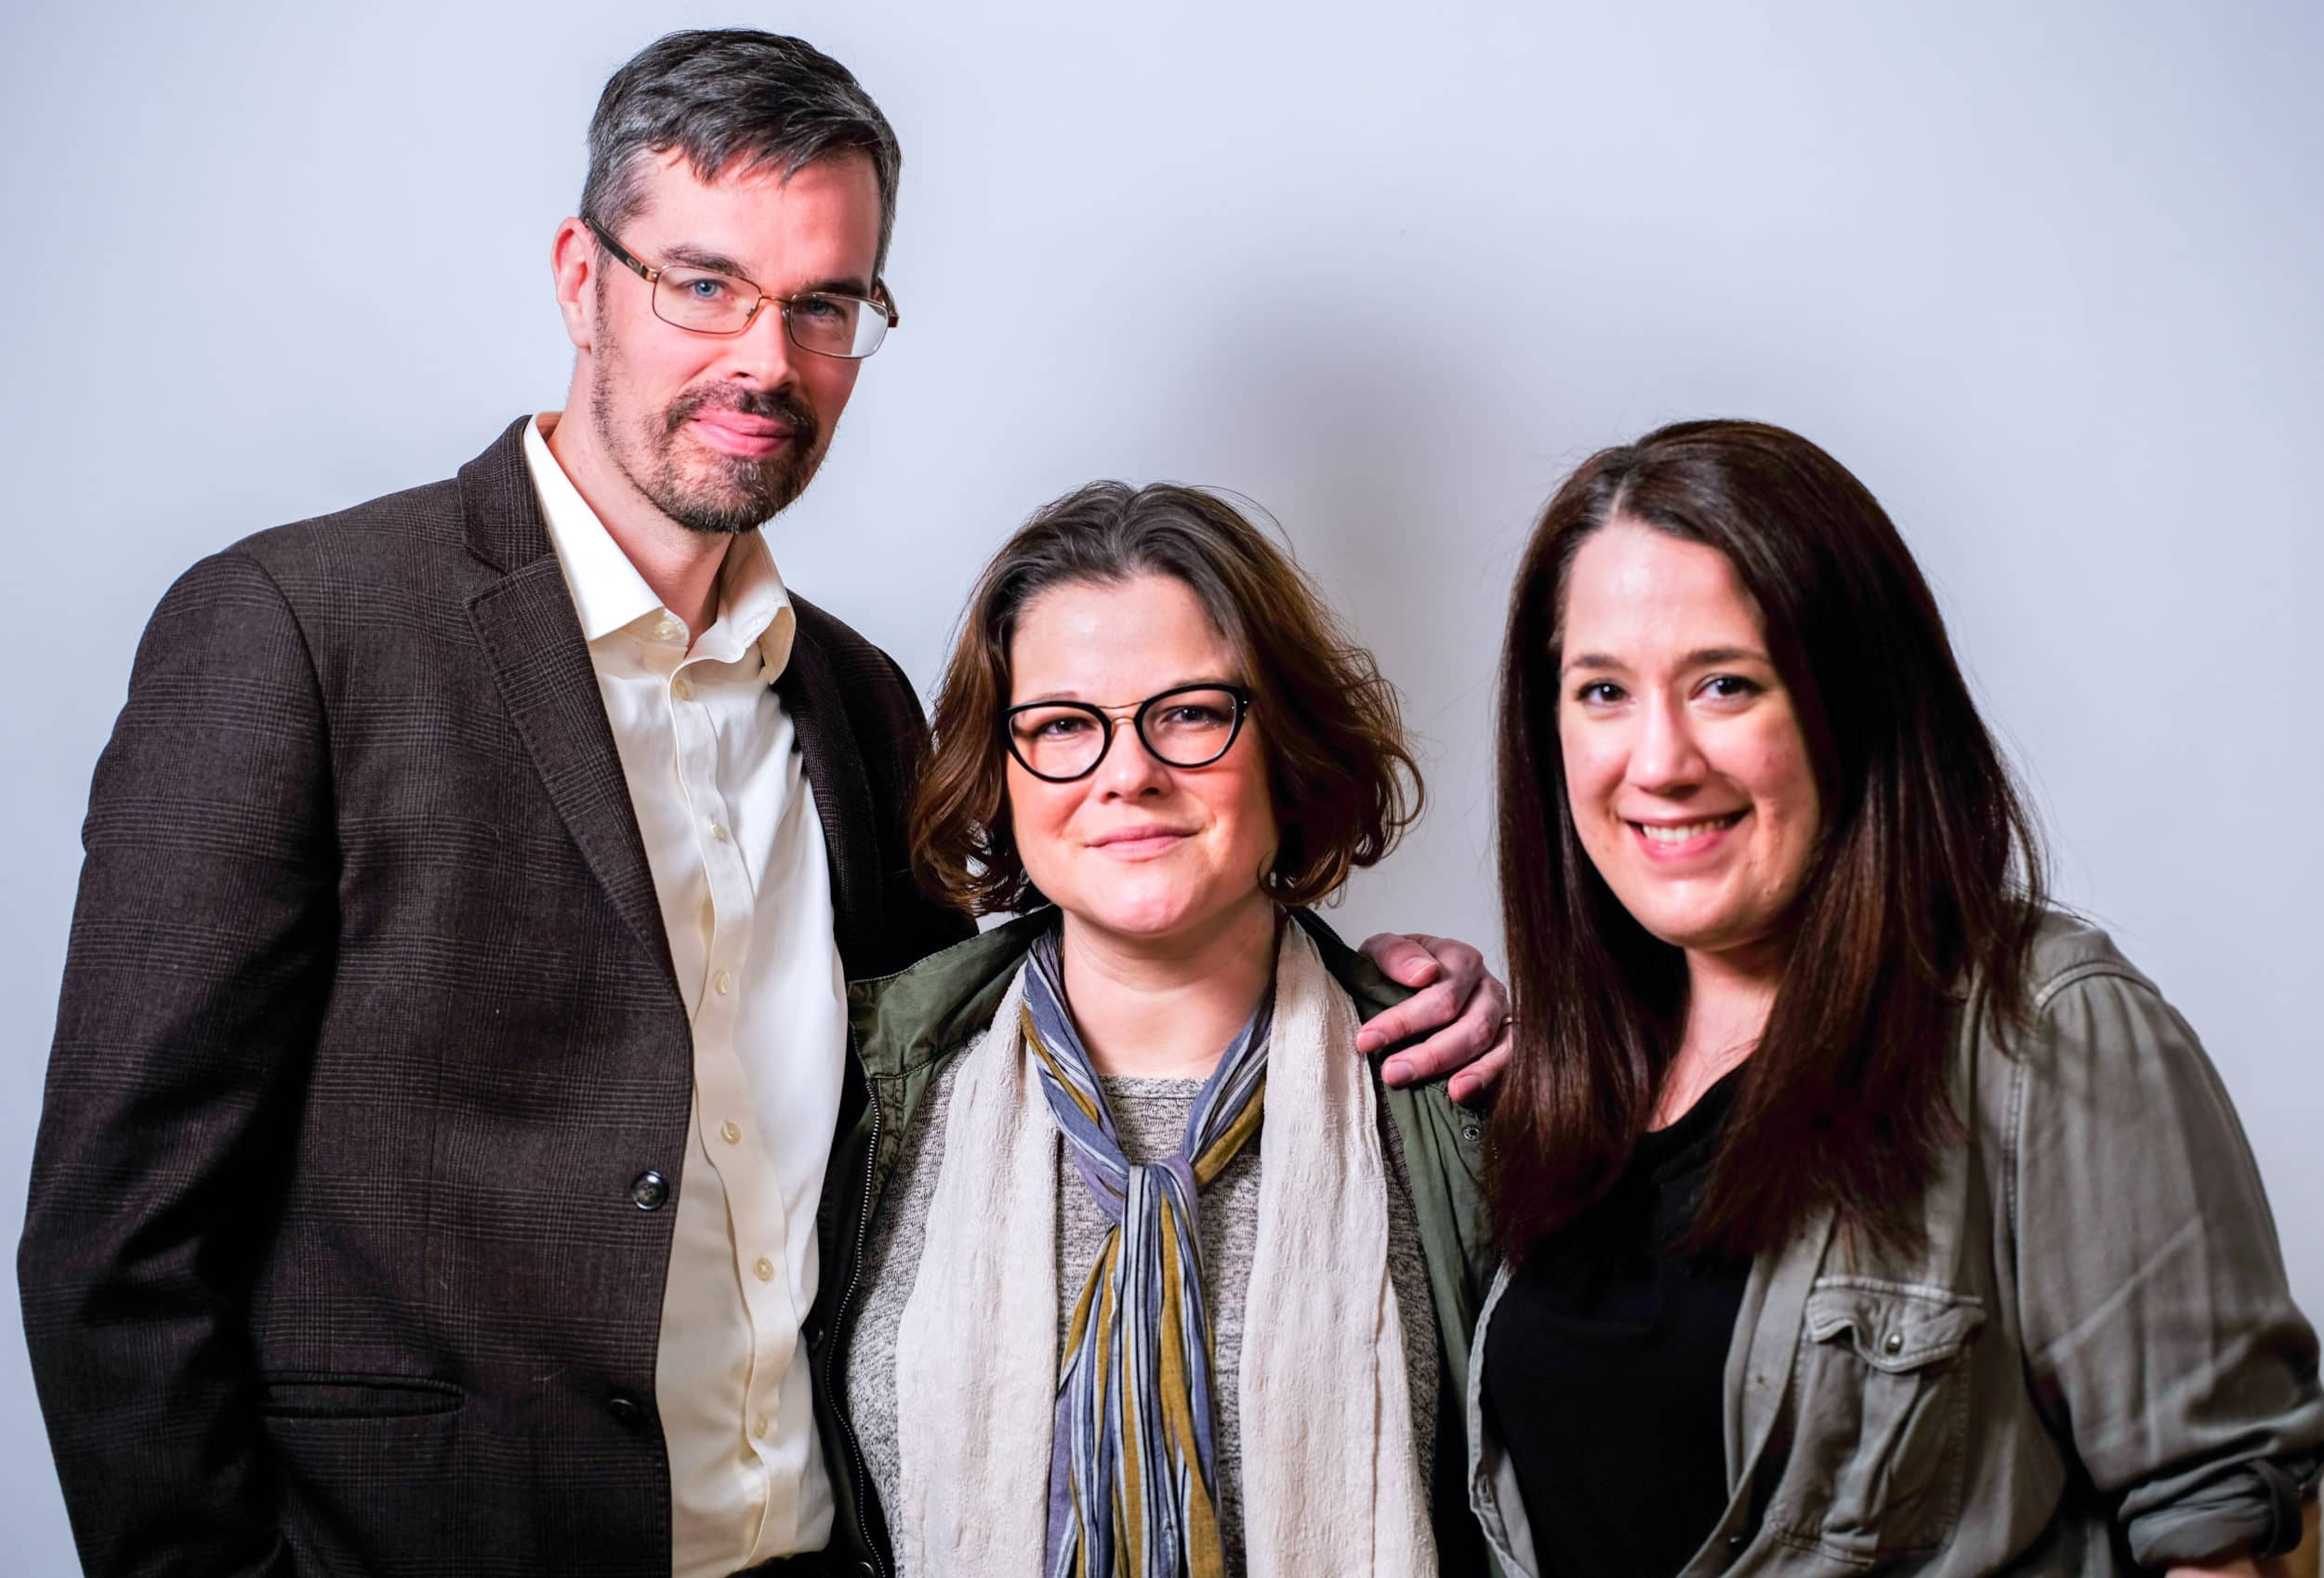 L-R: Christopher Crockett as John, Director Julie Janson, and Amanda Ranowsky as Carol in the Providence Players' production of 'Oleanna.' Photo by Rob Cuevas.